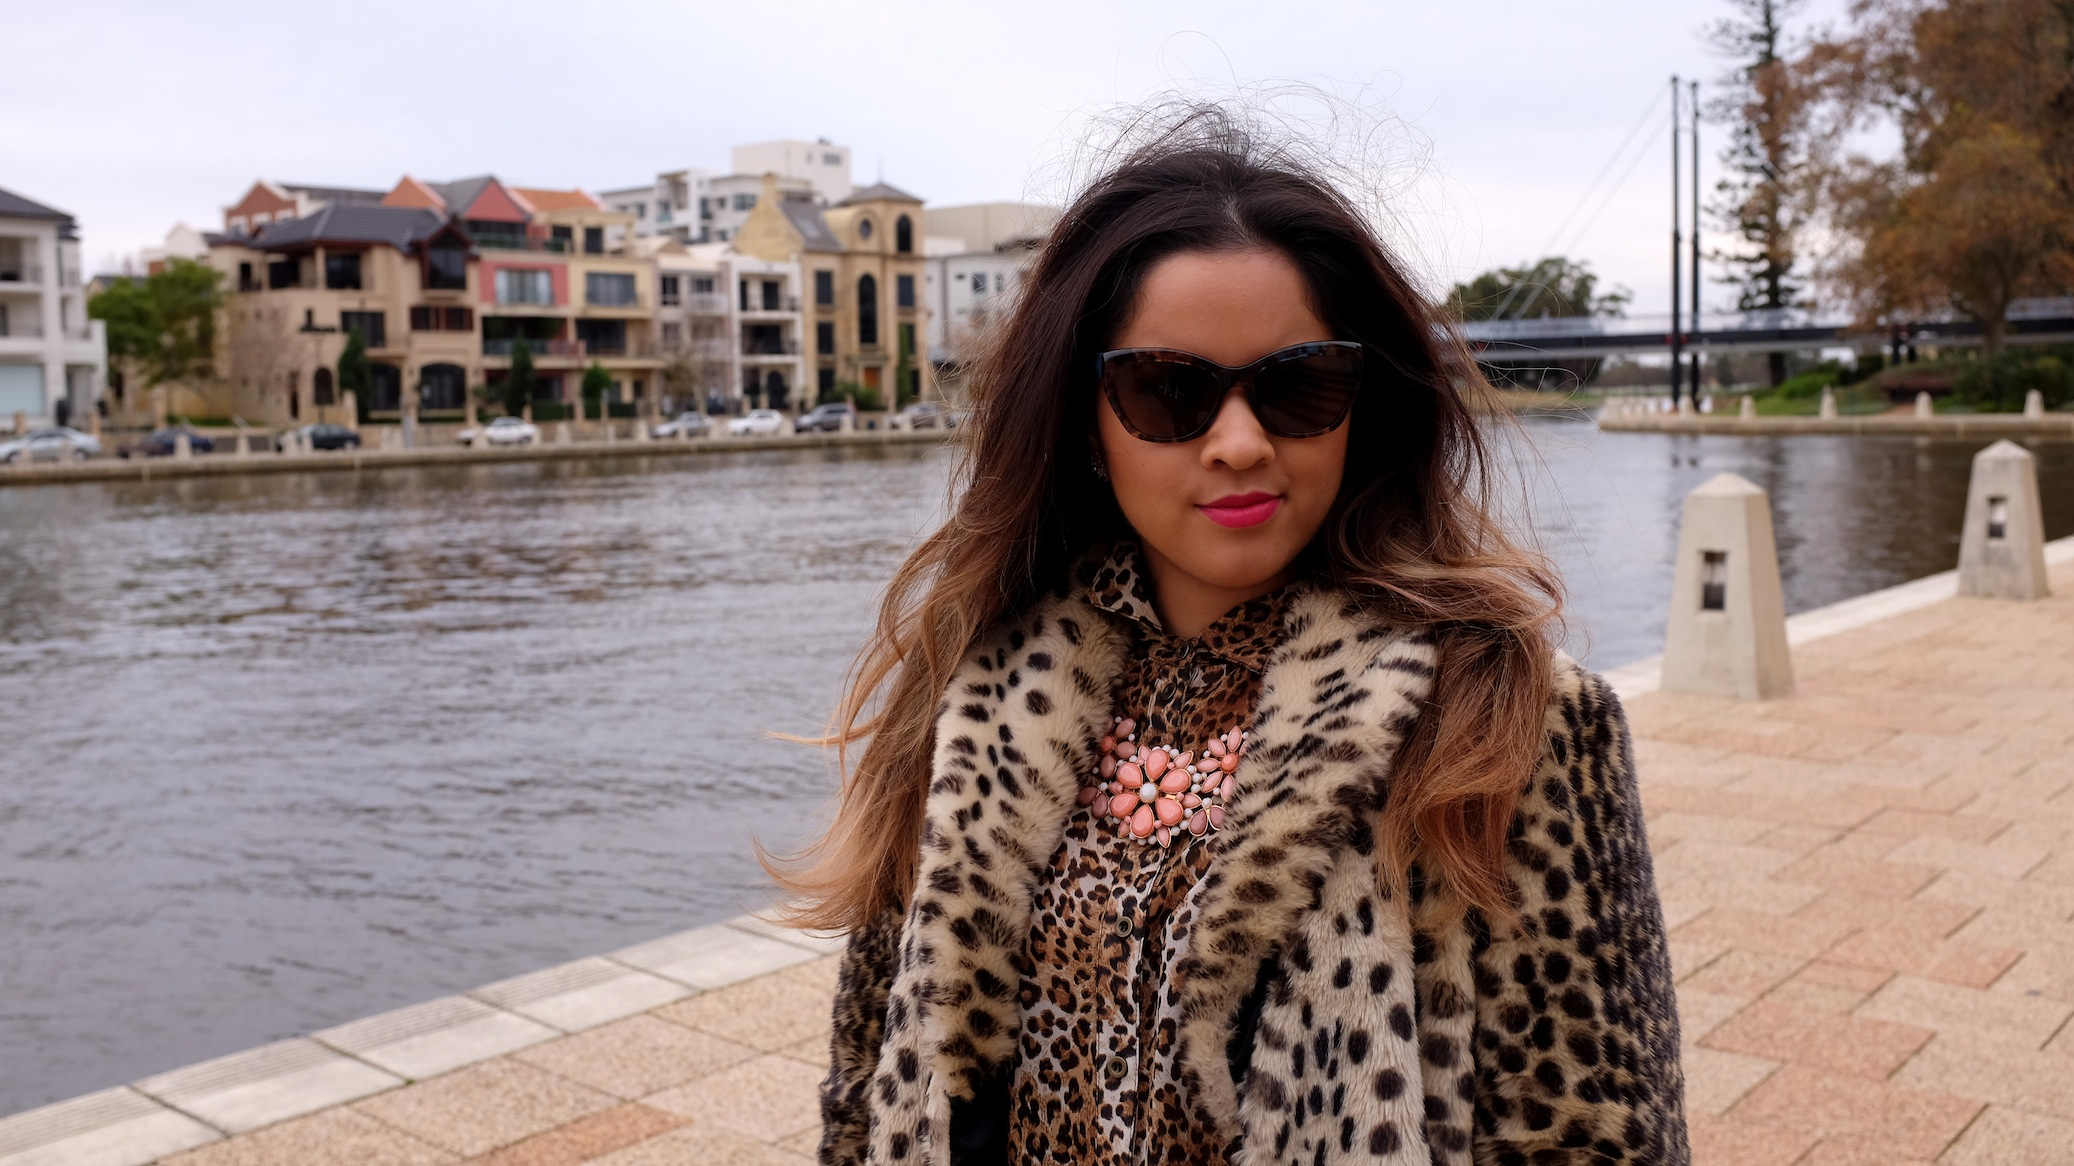 balayage, Blogger, Chic, Design, eyes, Fashion, Fashion Blogger, flats, Forever New, get the look, hair, leopard, lipstick, makeup, navy, Nezuki, ocelot, ombre, ootd, outfit, outfit idea, perthblogger, photography, Prada, second hand, Shoes, slide, smile, street style, style, sunglasses, Sydney, Thrift, town hall, Vintage, white, perth, east perth, australia, street style, street photography